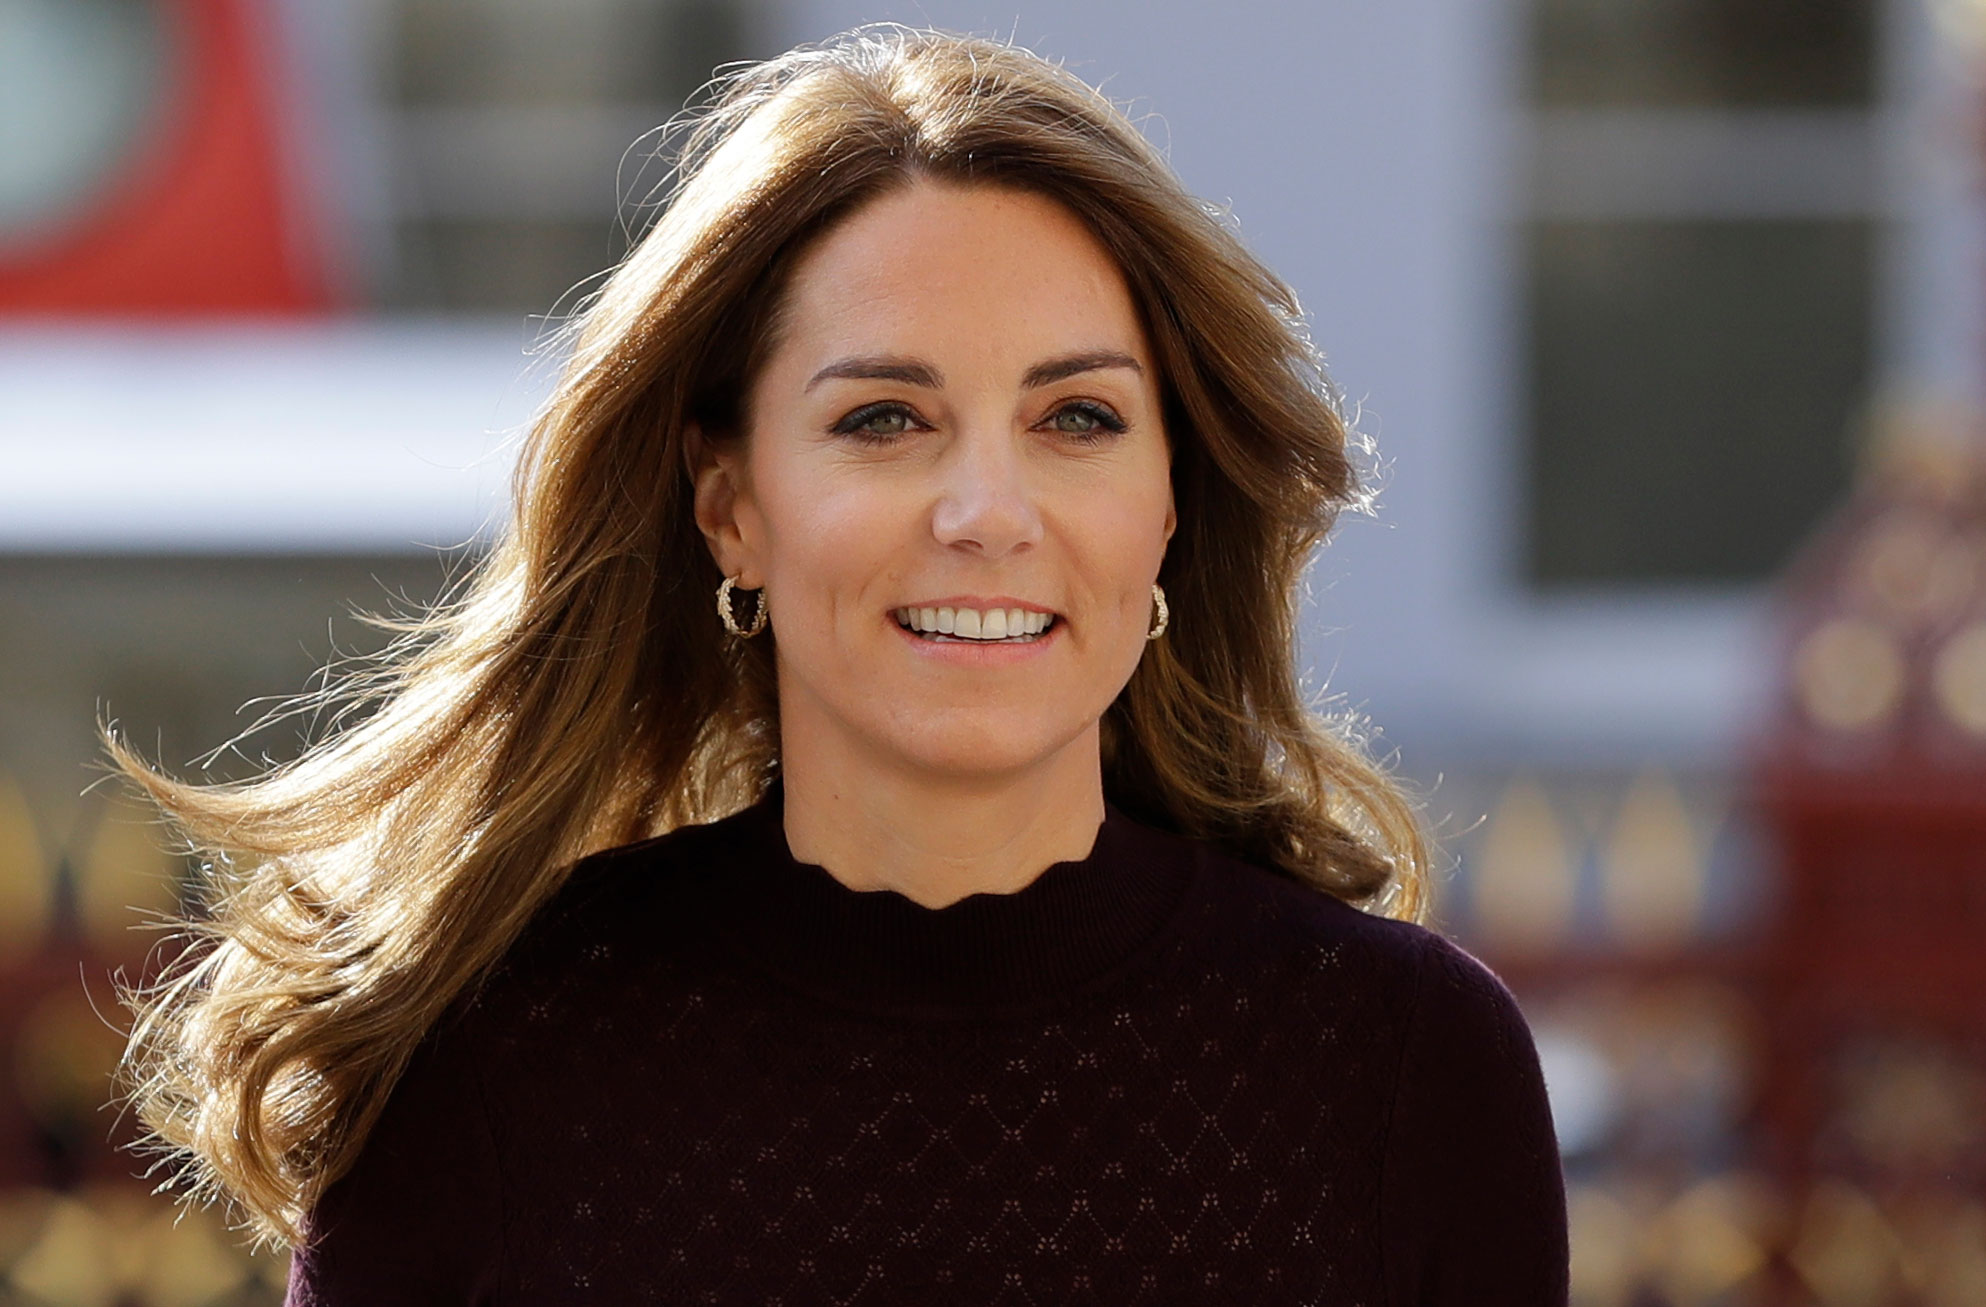 The Duchess of Cambridge stuns in high street fashion as she steps out at National History Museum